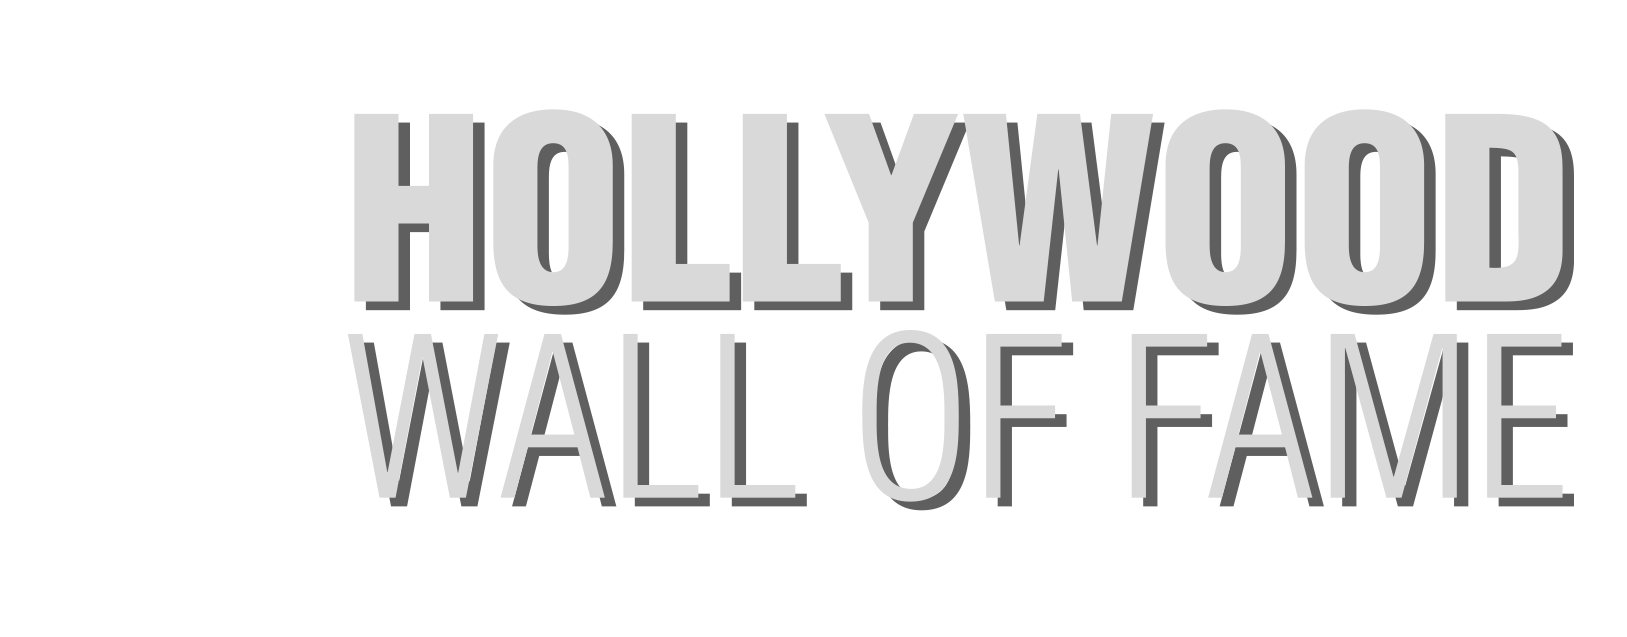 Hollywood Wall of Fame